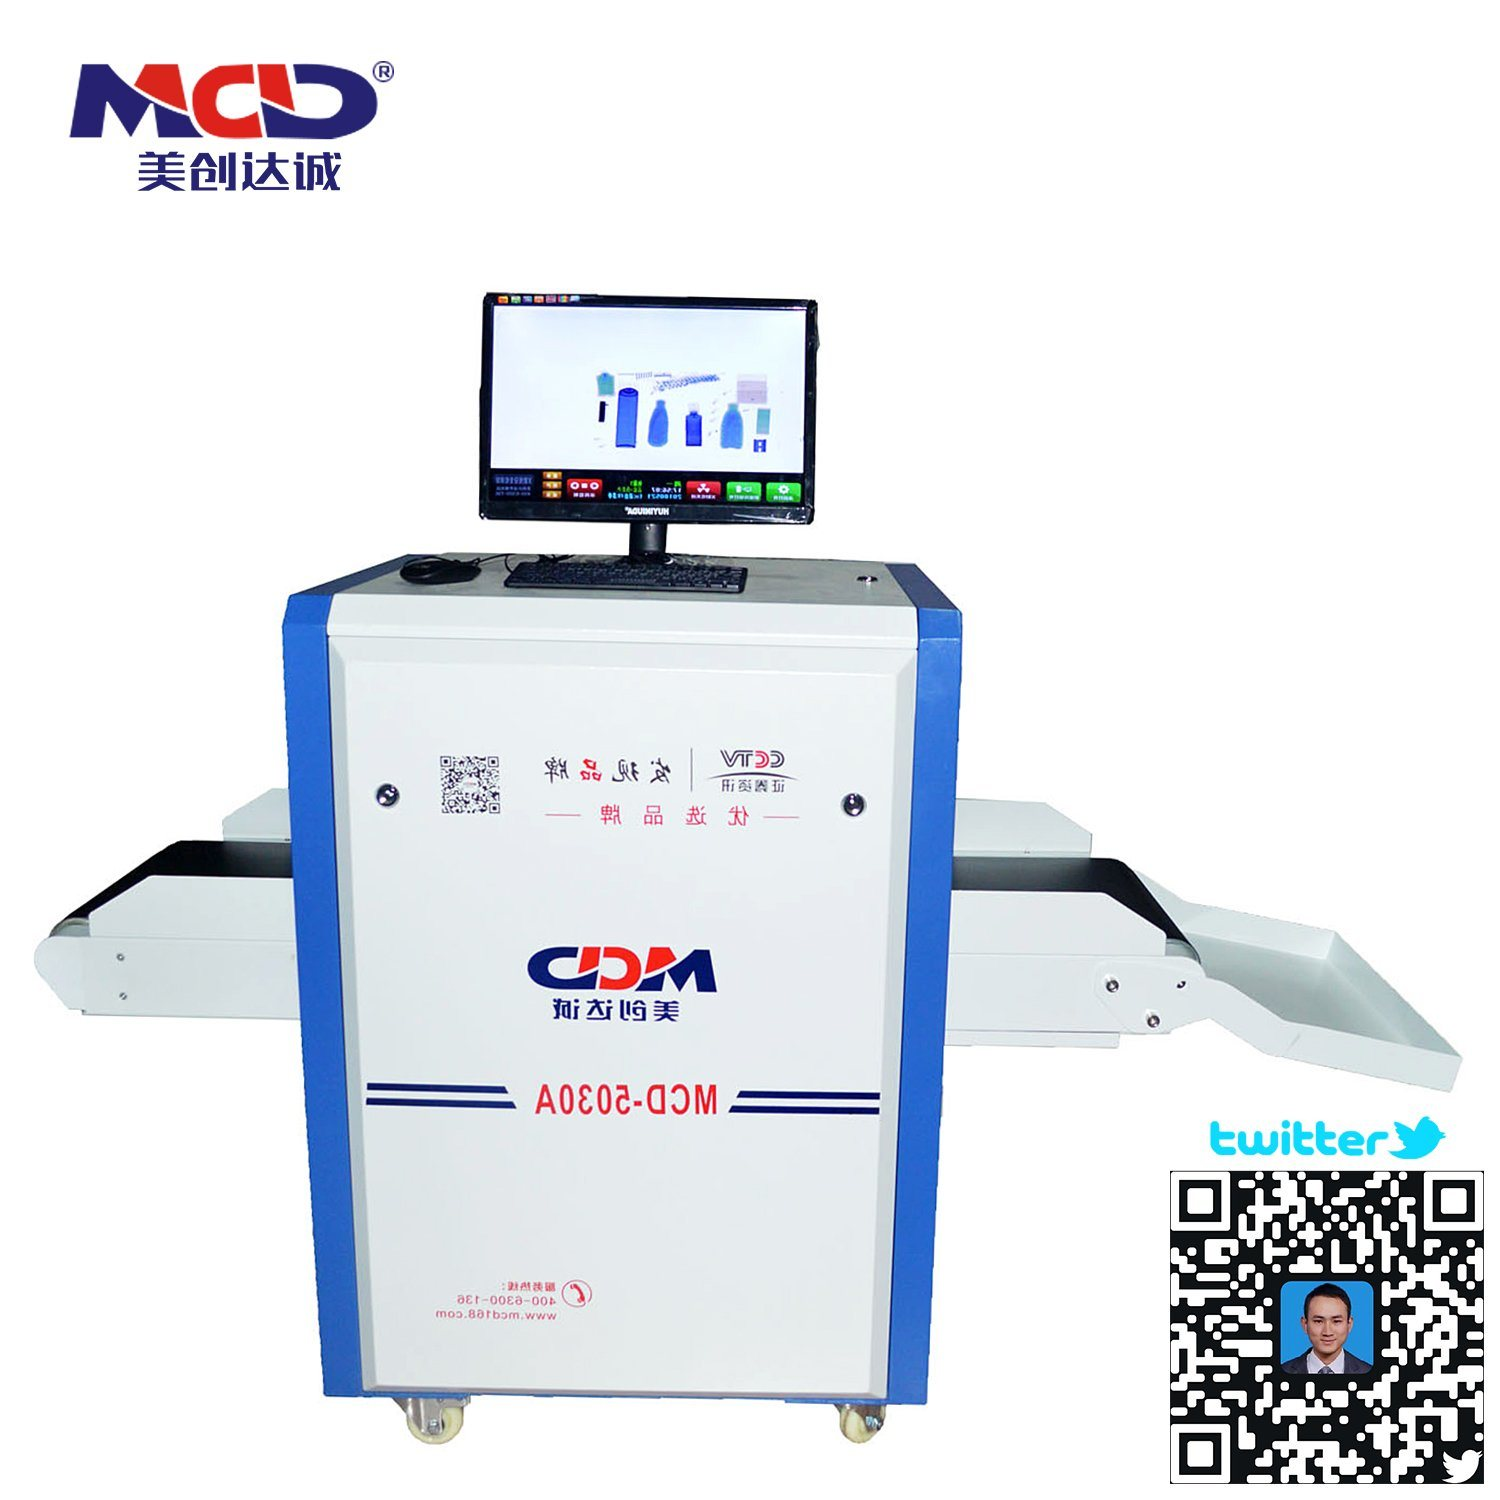 [Hot Item] Wholesale X-ray Baggage Scanner Mcd-5030A for Hotel/Court Safety  Inspection/X-ray Machine Prices